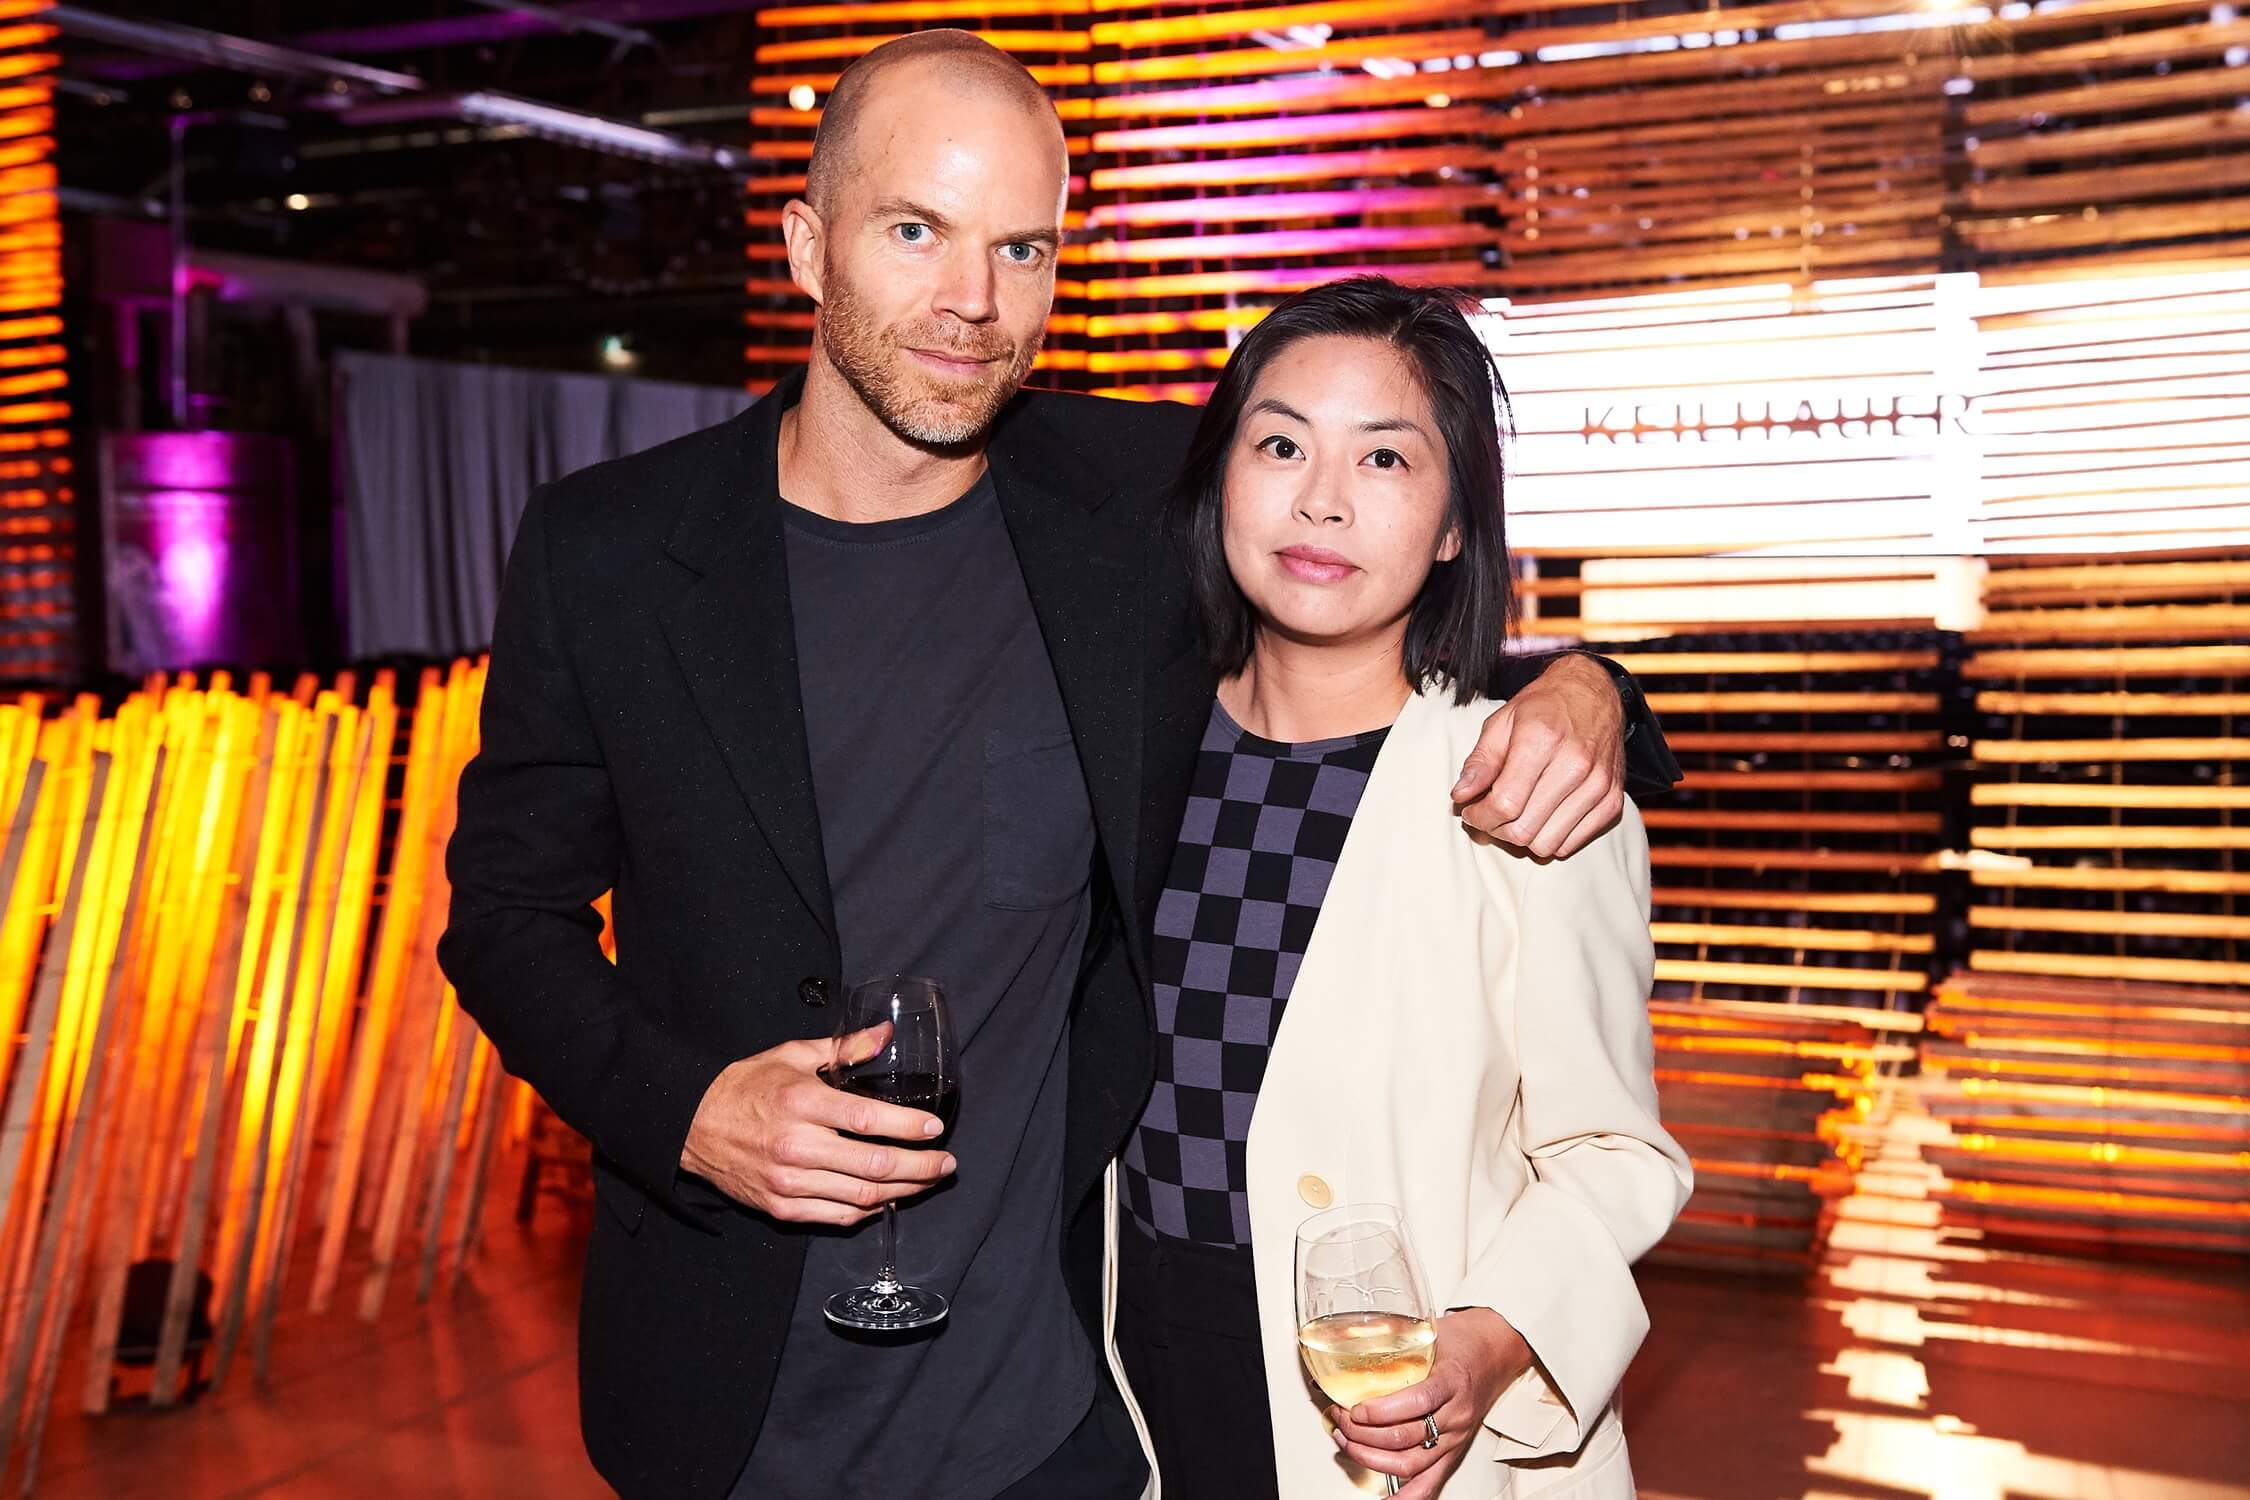 Designers Matt Carr (an AZ Awards 2019 juror, and the designer of this year's trophy) and Joyce Lo, AZ Awards 2019: Scenes from the Gala